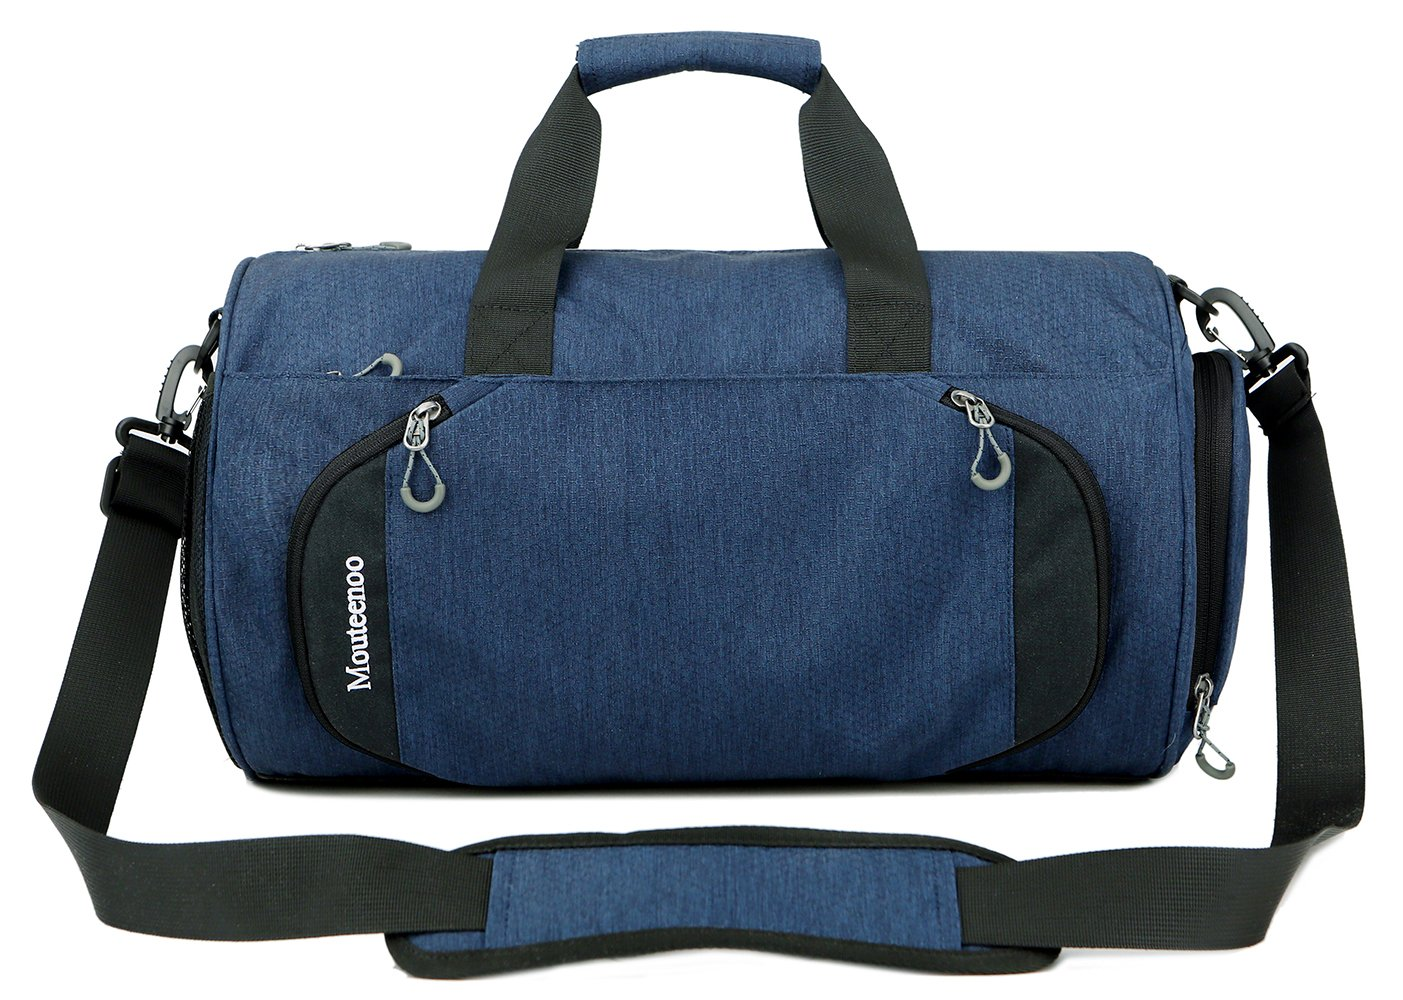 Gym Sports Small Duffel Bag for Men and Women with Shoes Compartment - Mouteenoo (X-Small, Blue/Black) by Mouteenoo